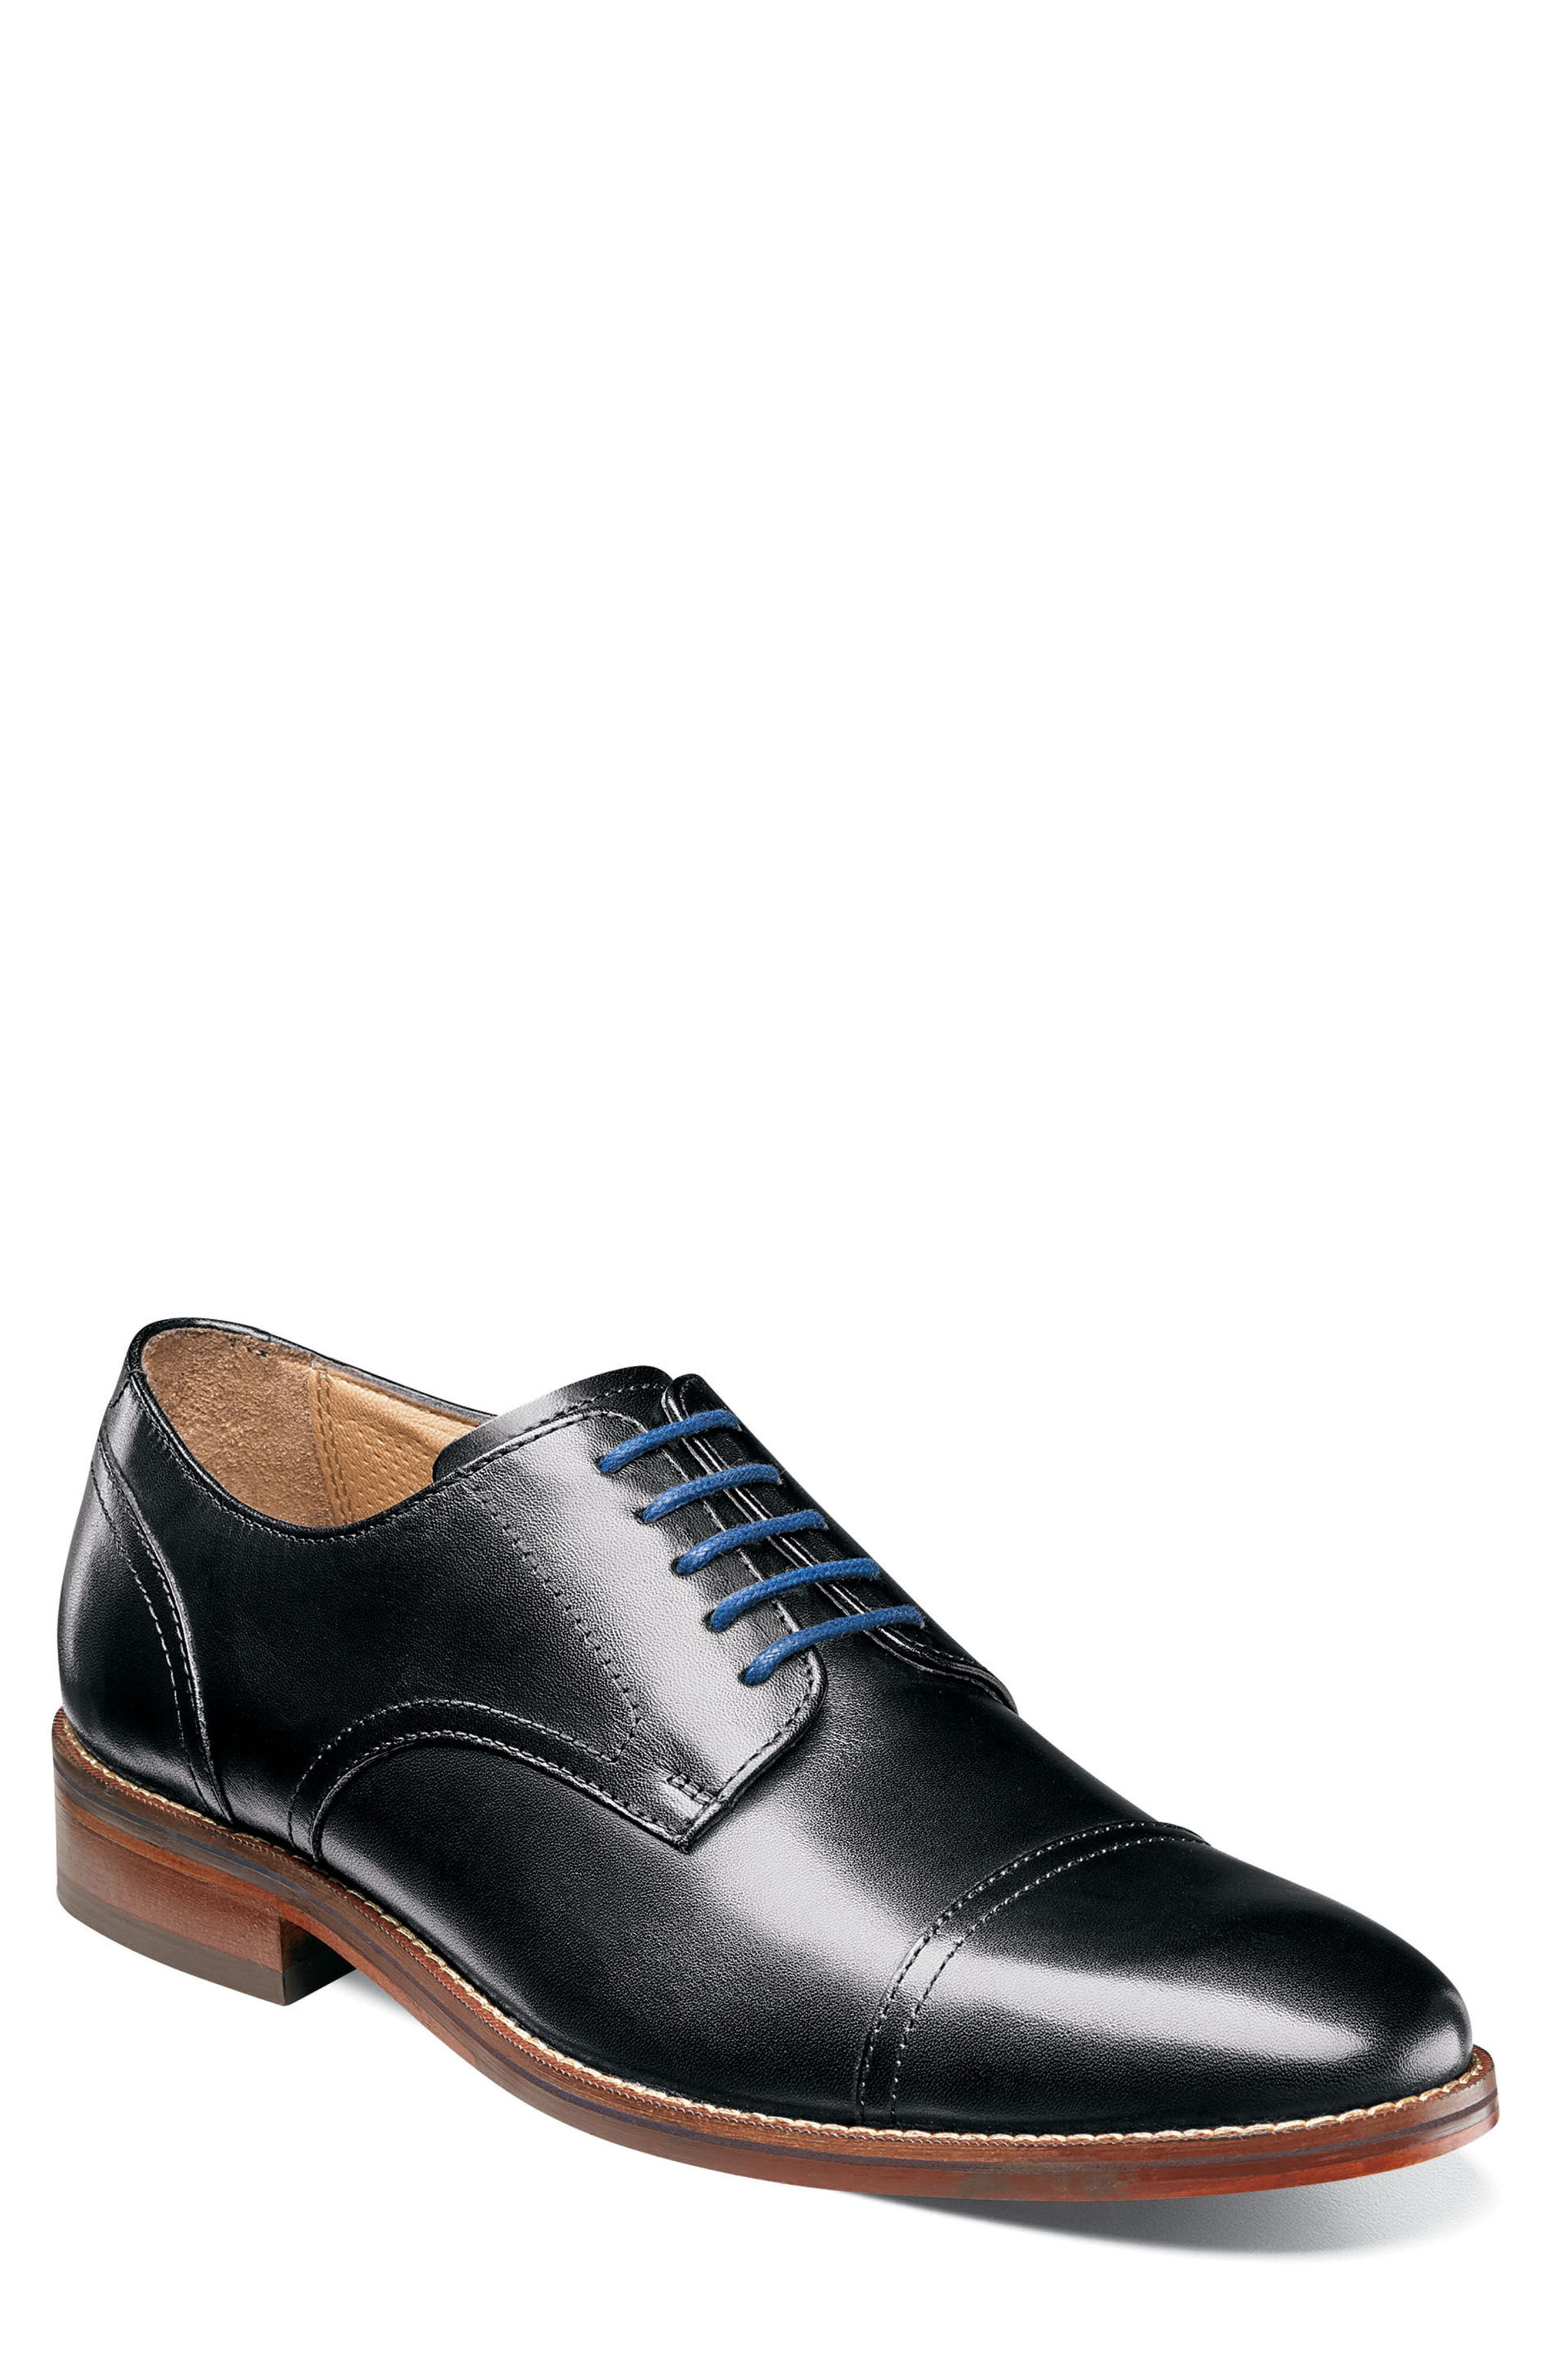 Salerno Cap Toe Derby,                         Main,                         color, BLACK LEATHER